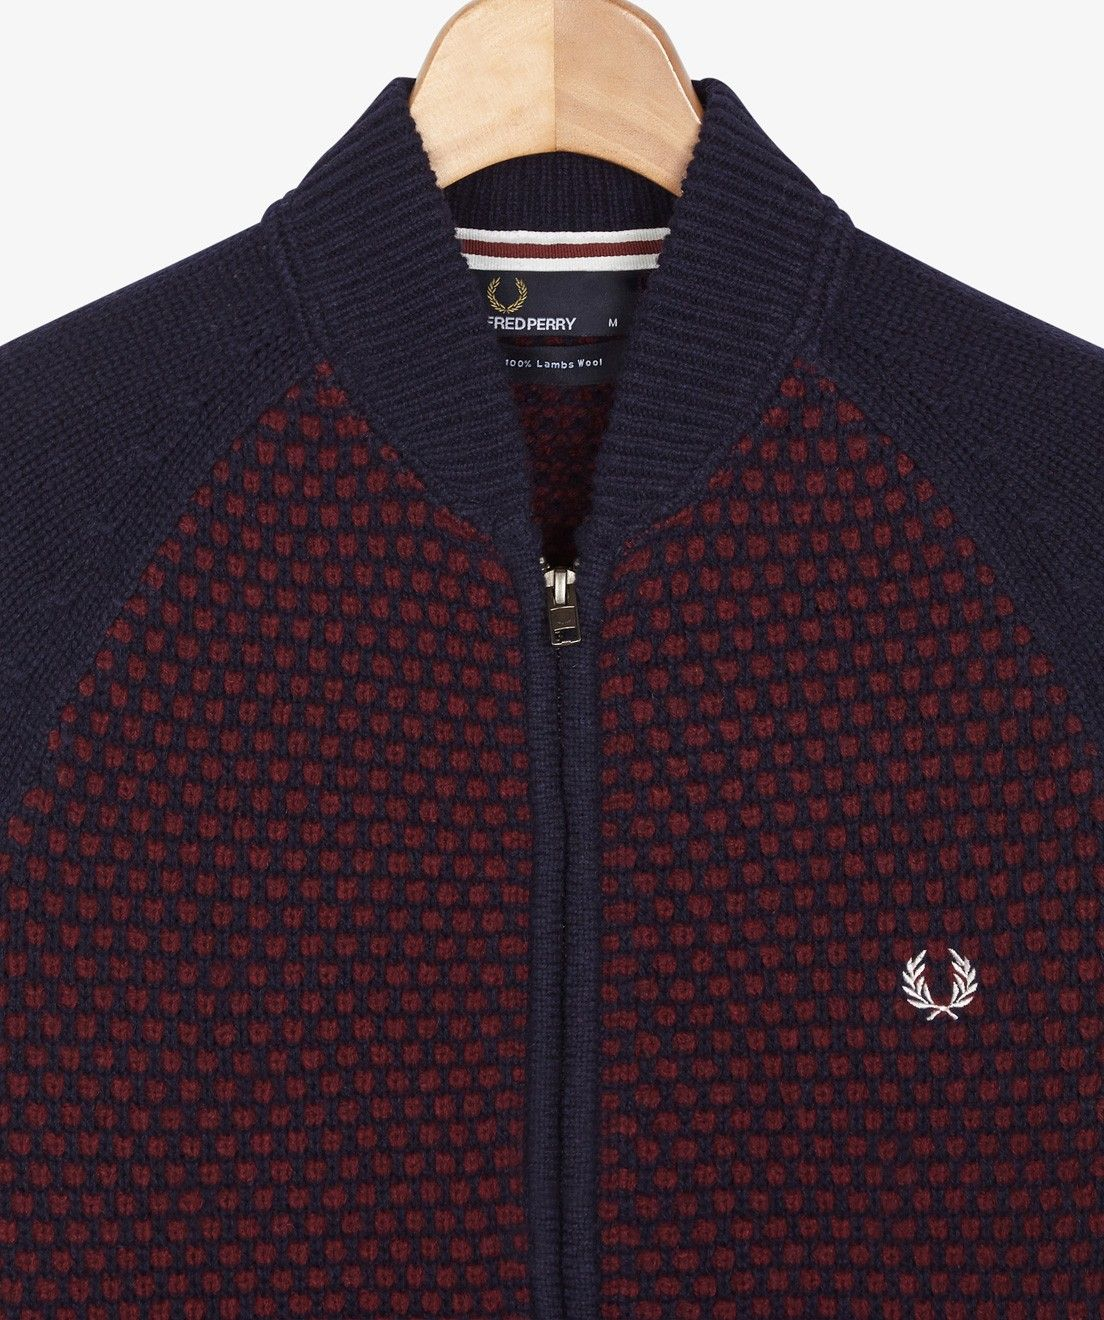 Fred Perry - Piqué Knit Lambswool Bomber Cardigan